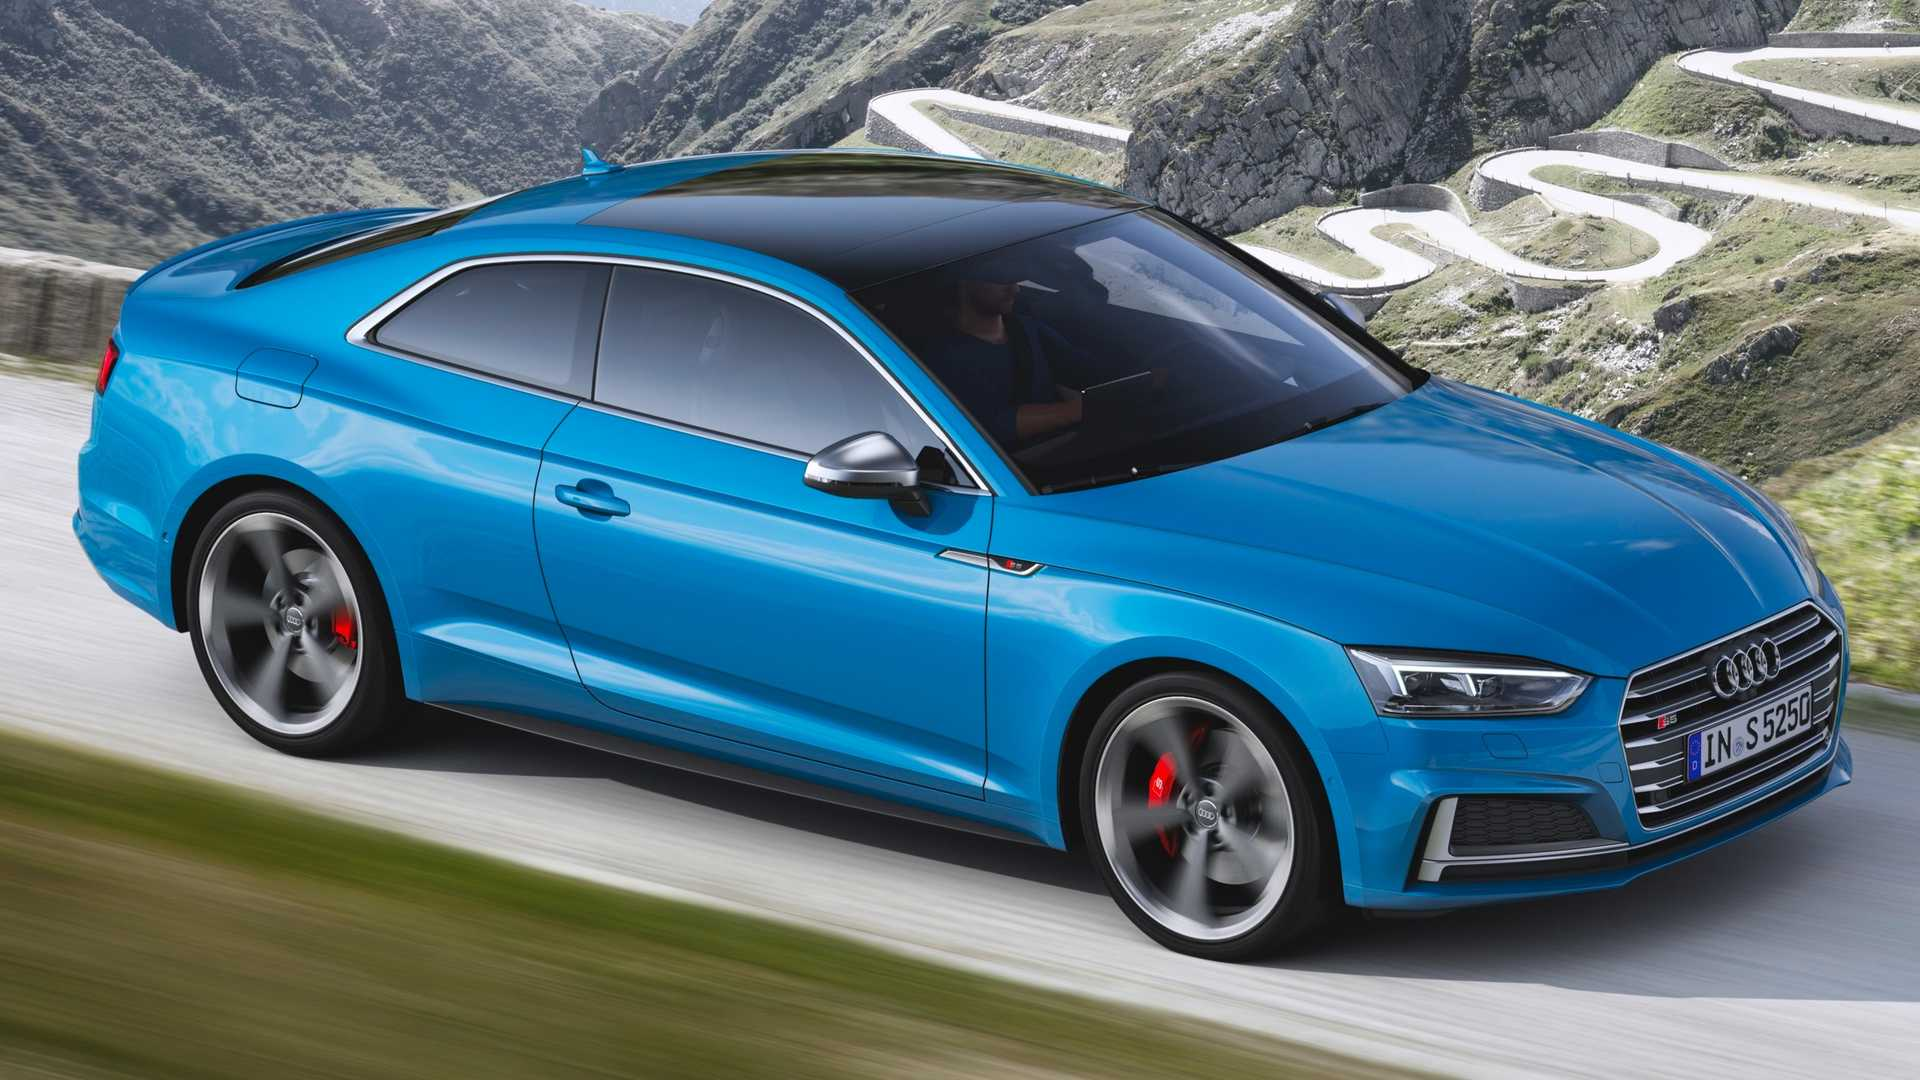 20 Best 2020 Audi Rs5 Tdi Exterior And Interior